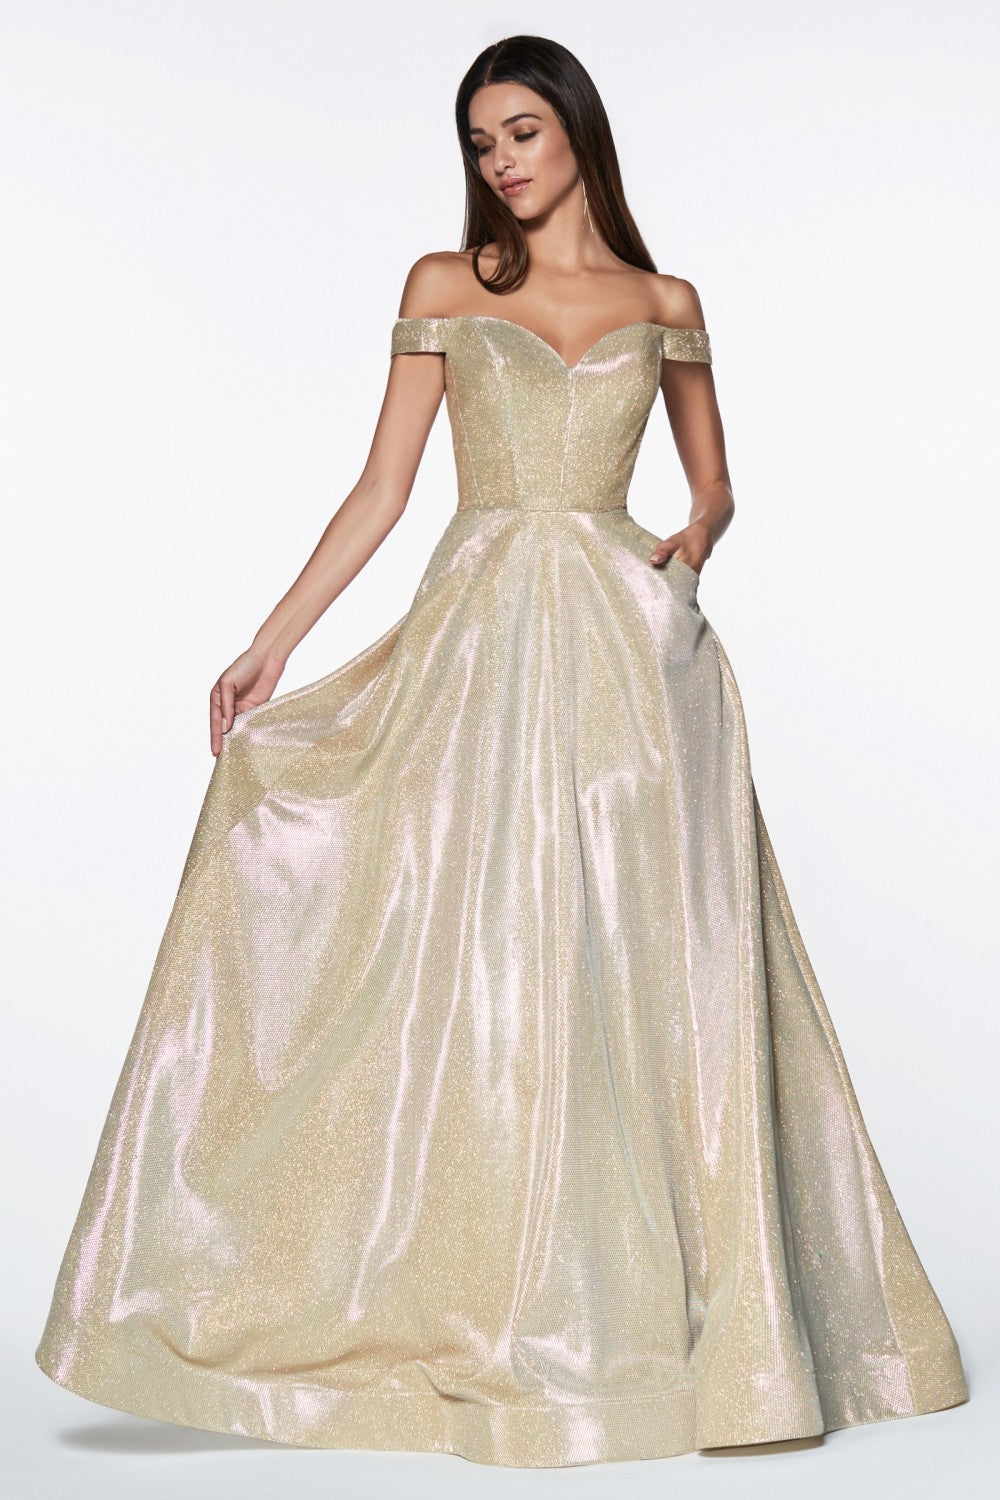 Off The Shoulder Ball Gown With Glitter Effect And Sweetheart Neckline